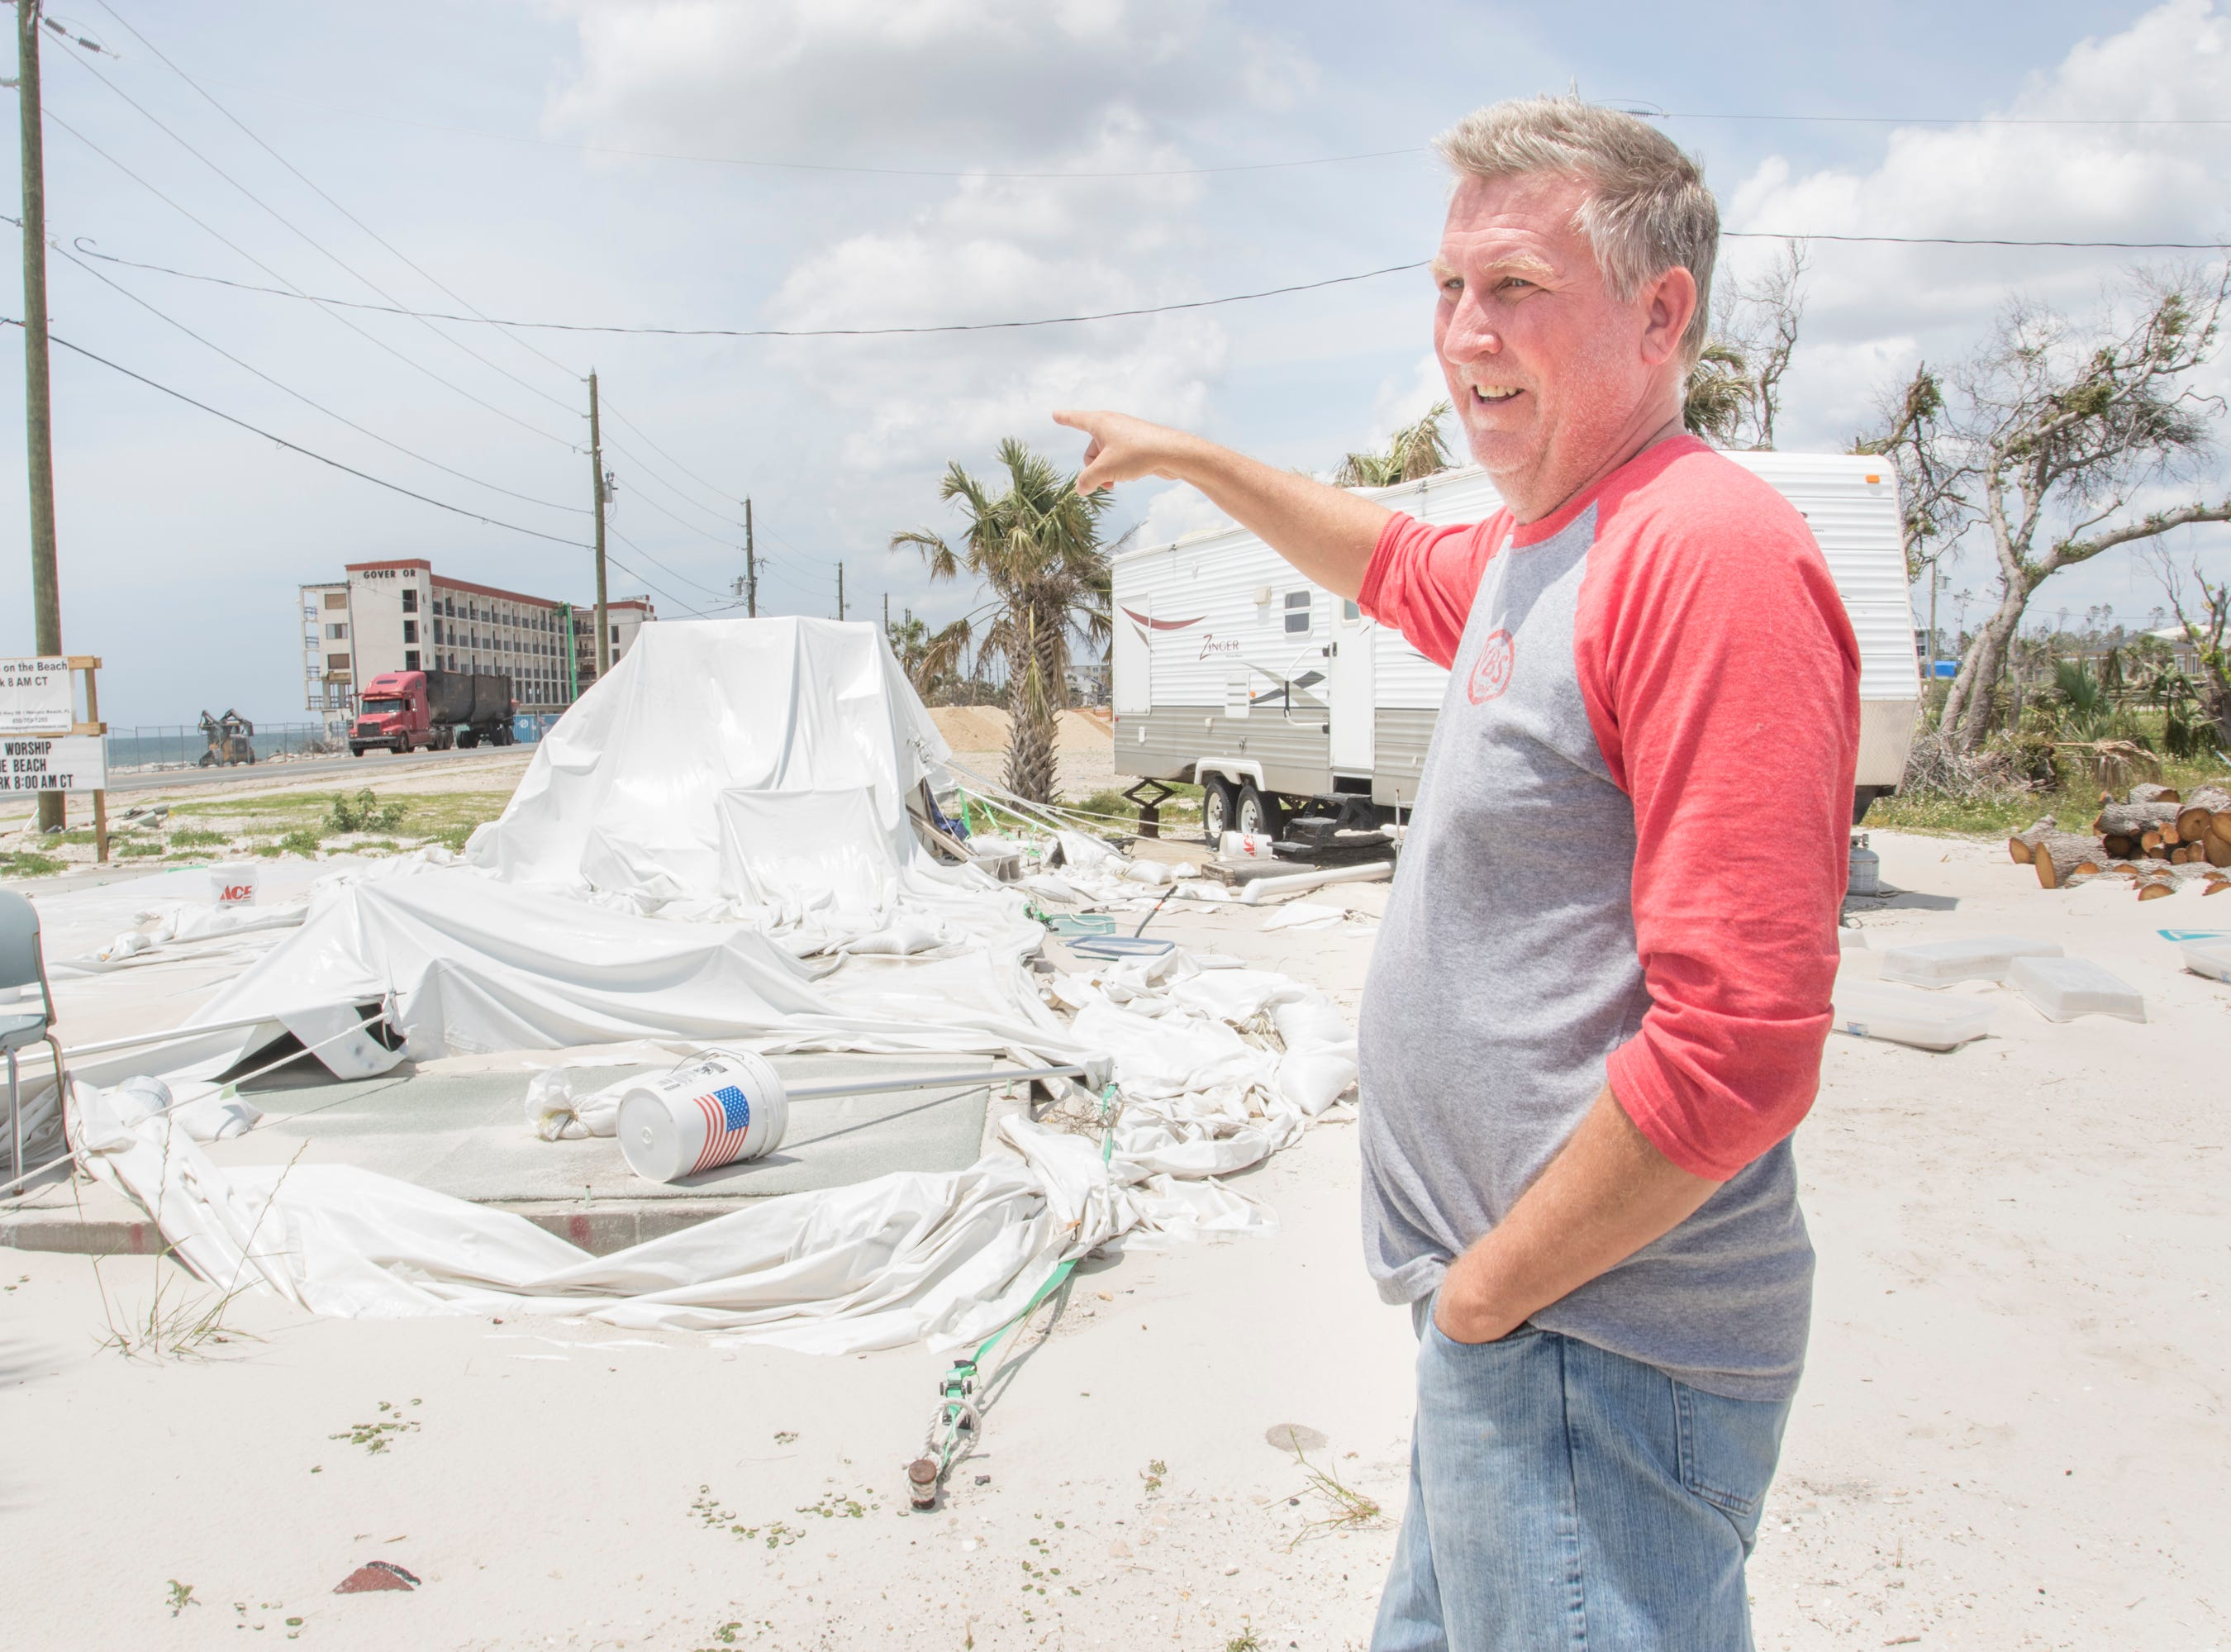 David Gieseking, pastor of Living Water Church at the Beach, talks about surviving Hurricane Michael that destroyed his church that once stood in on his property in Mexico Beach on Wednesday, May 8, 2019.  Gieseking also lost his house and is now living in the RV on next to the foundation of his church.